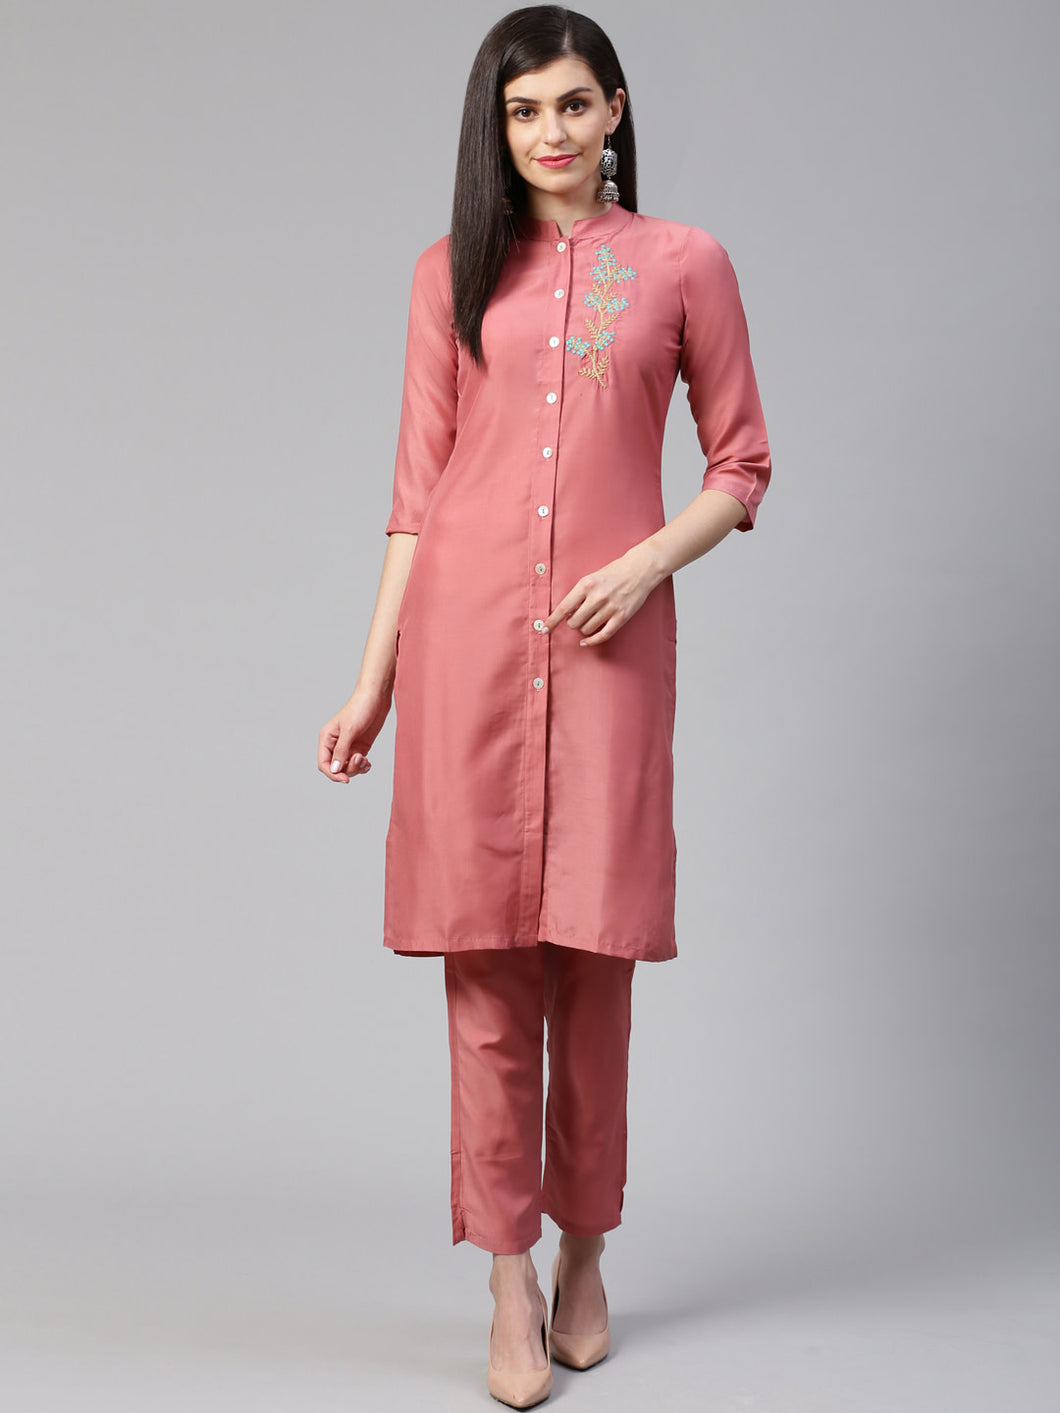 Jompers Women Pink Embroidered Solid Kurta with Trousers